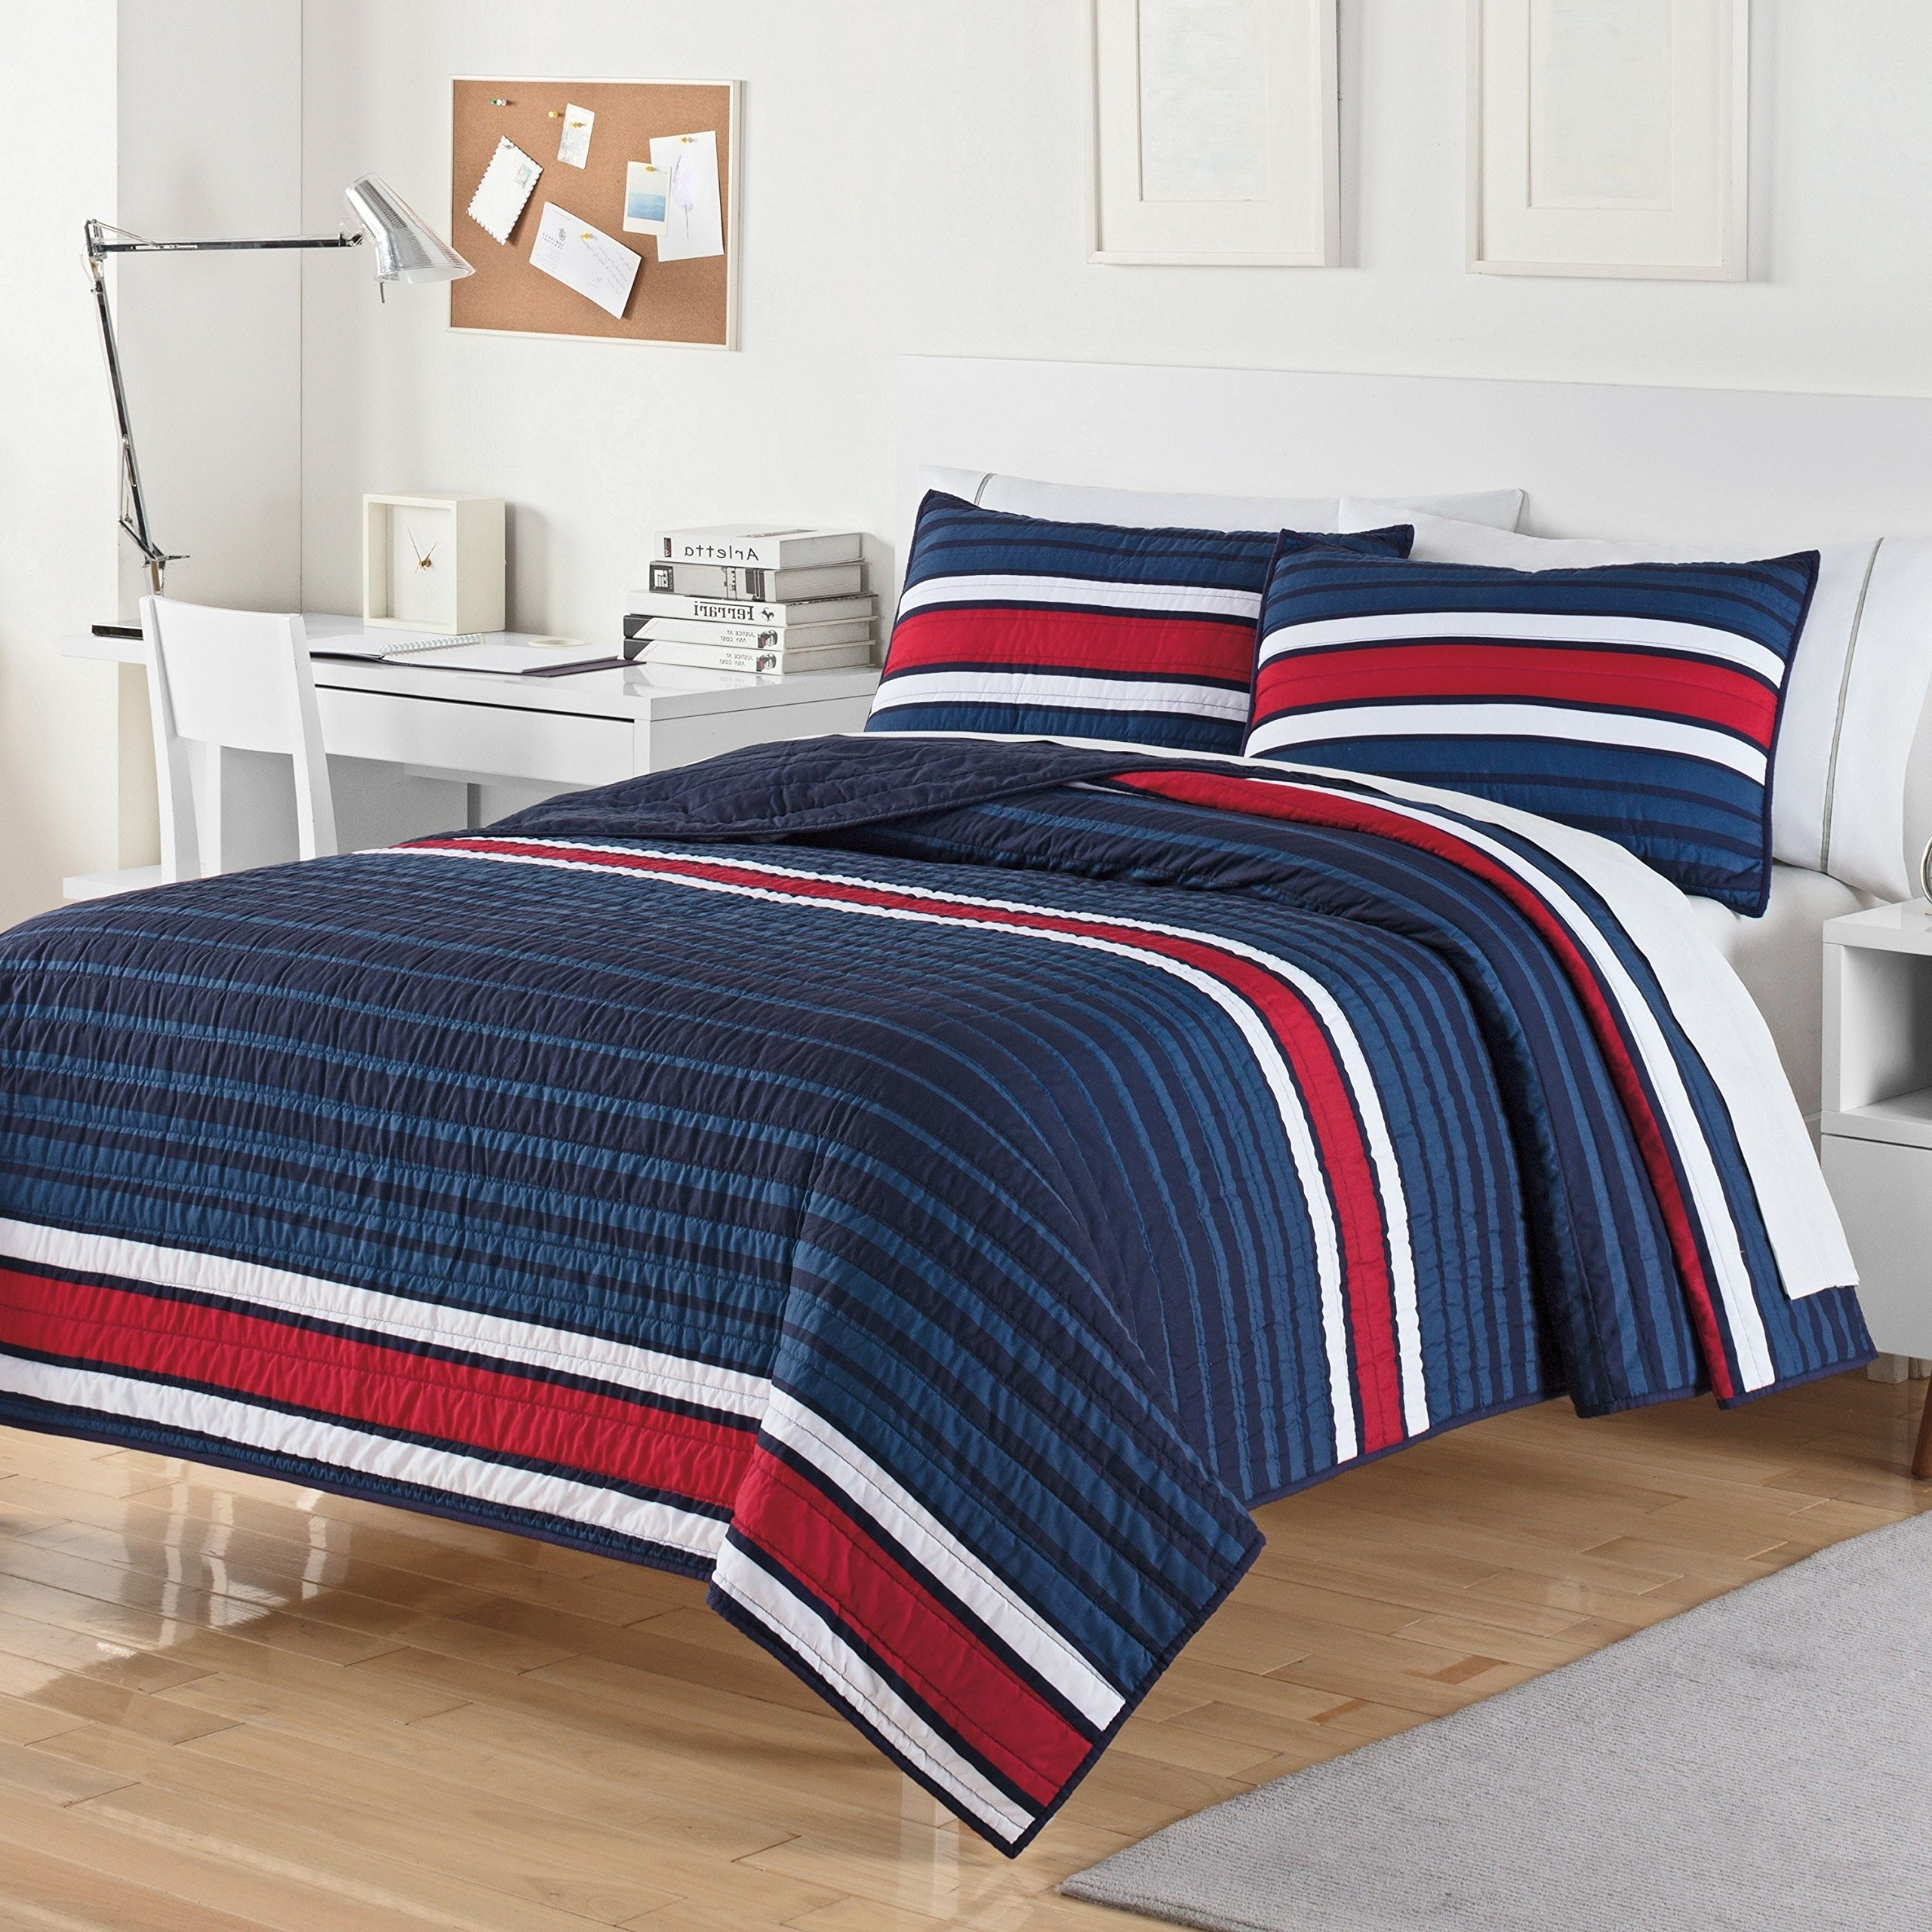 OS 3 Piece White Blue Stripe King Quilt Set, Red Rugby Themed Bedding Navy Dorm Room College University Bedroom Bold Modern Chic Stylish Trendy, Polyester